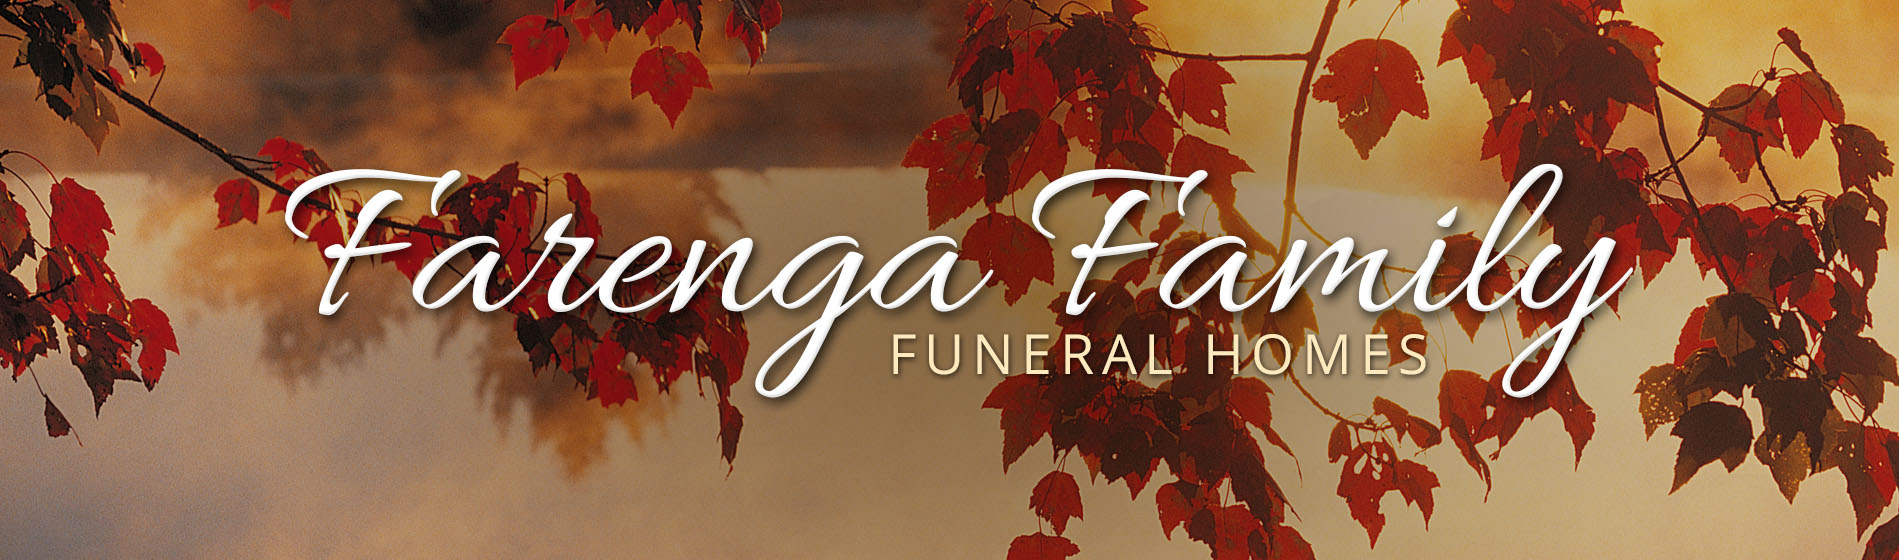 Past Services and Obituaries | Farenga Brothers Funeral Home